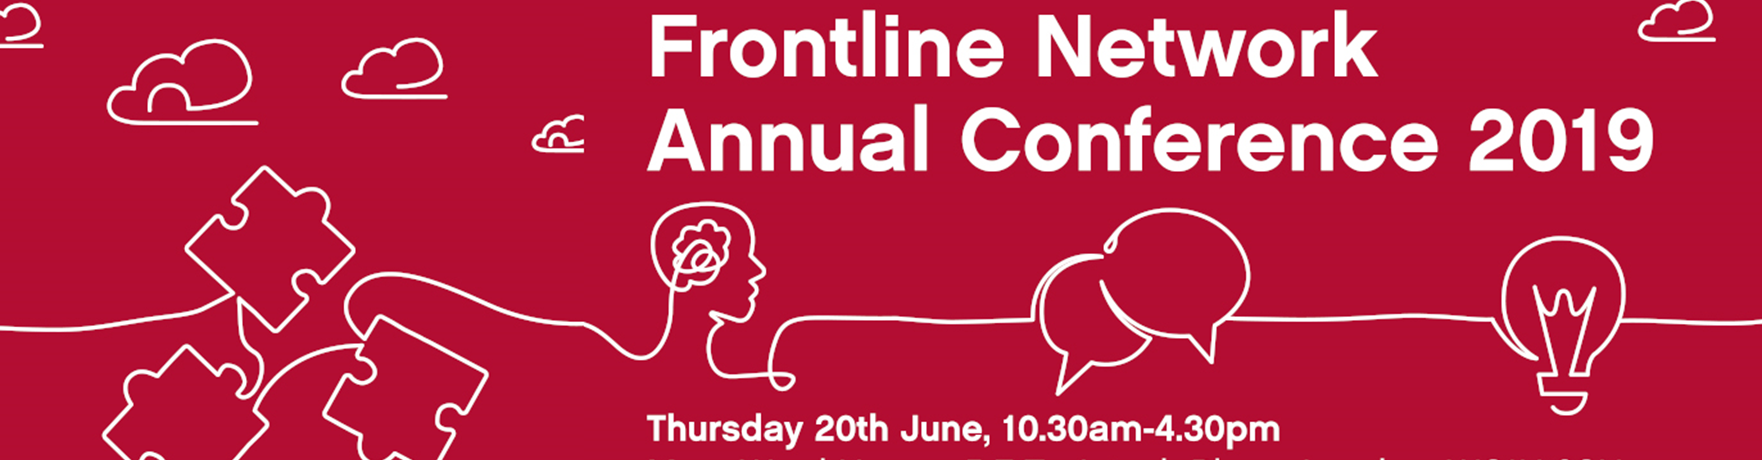 Frontline Network Annual Conference 2019 banner